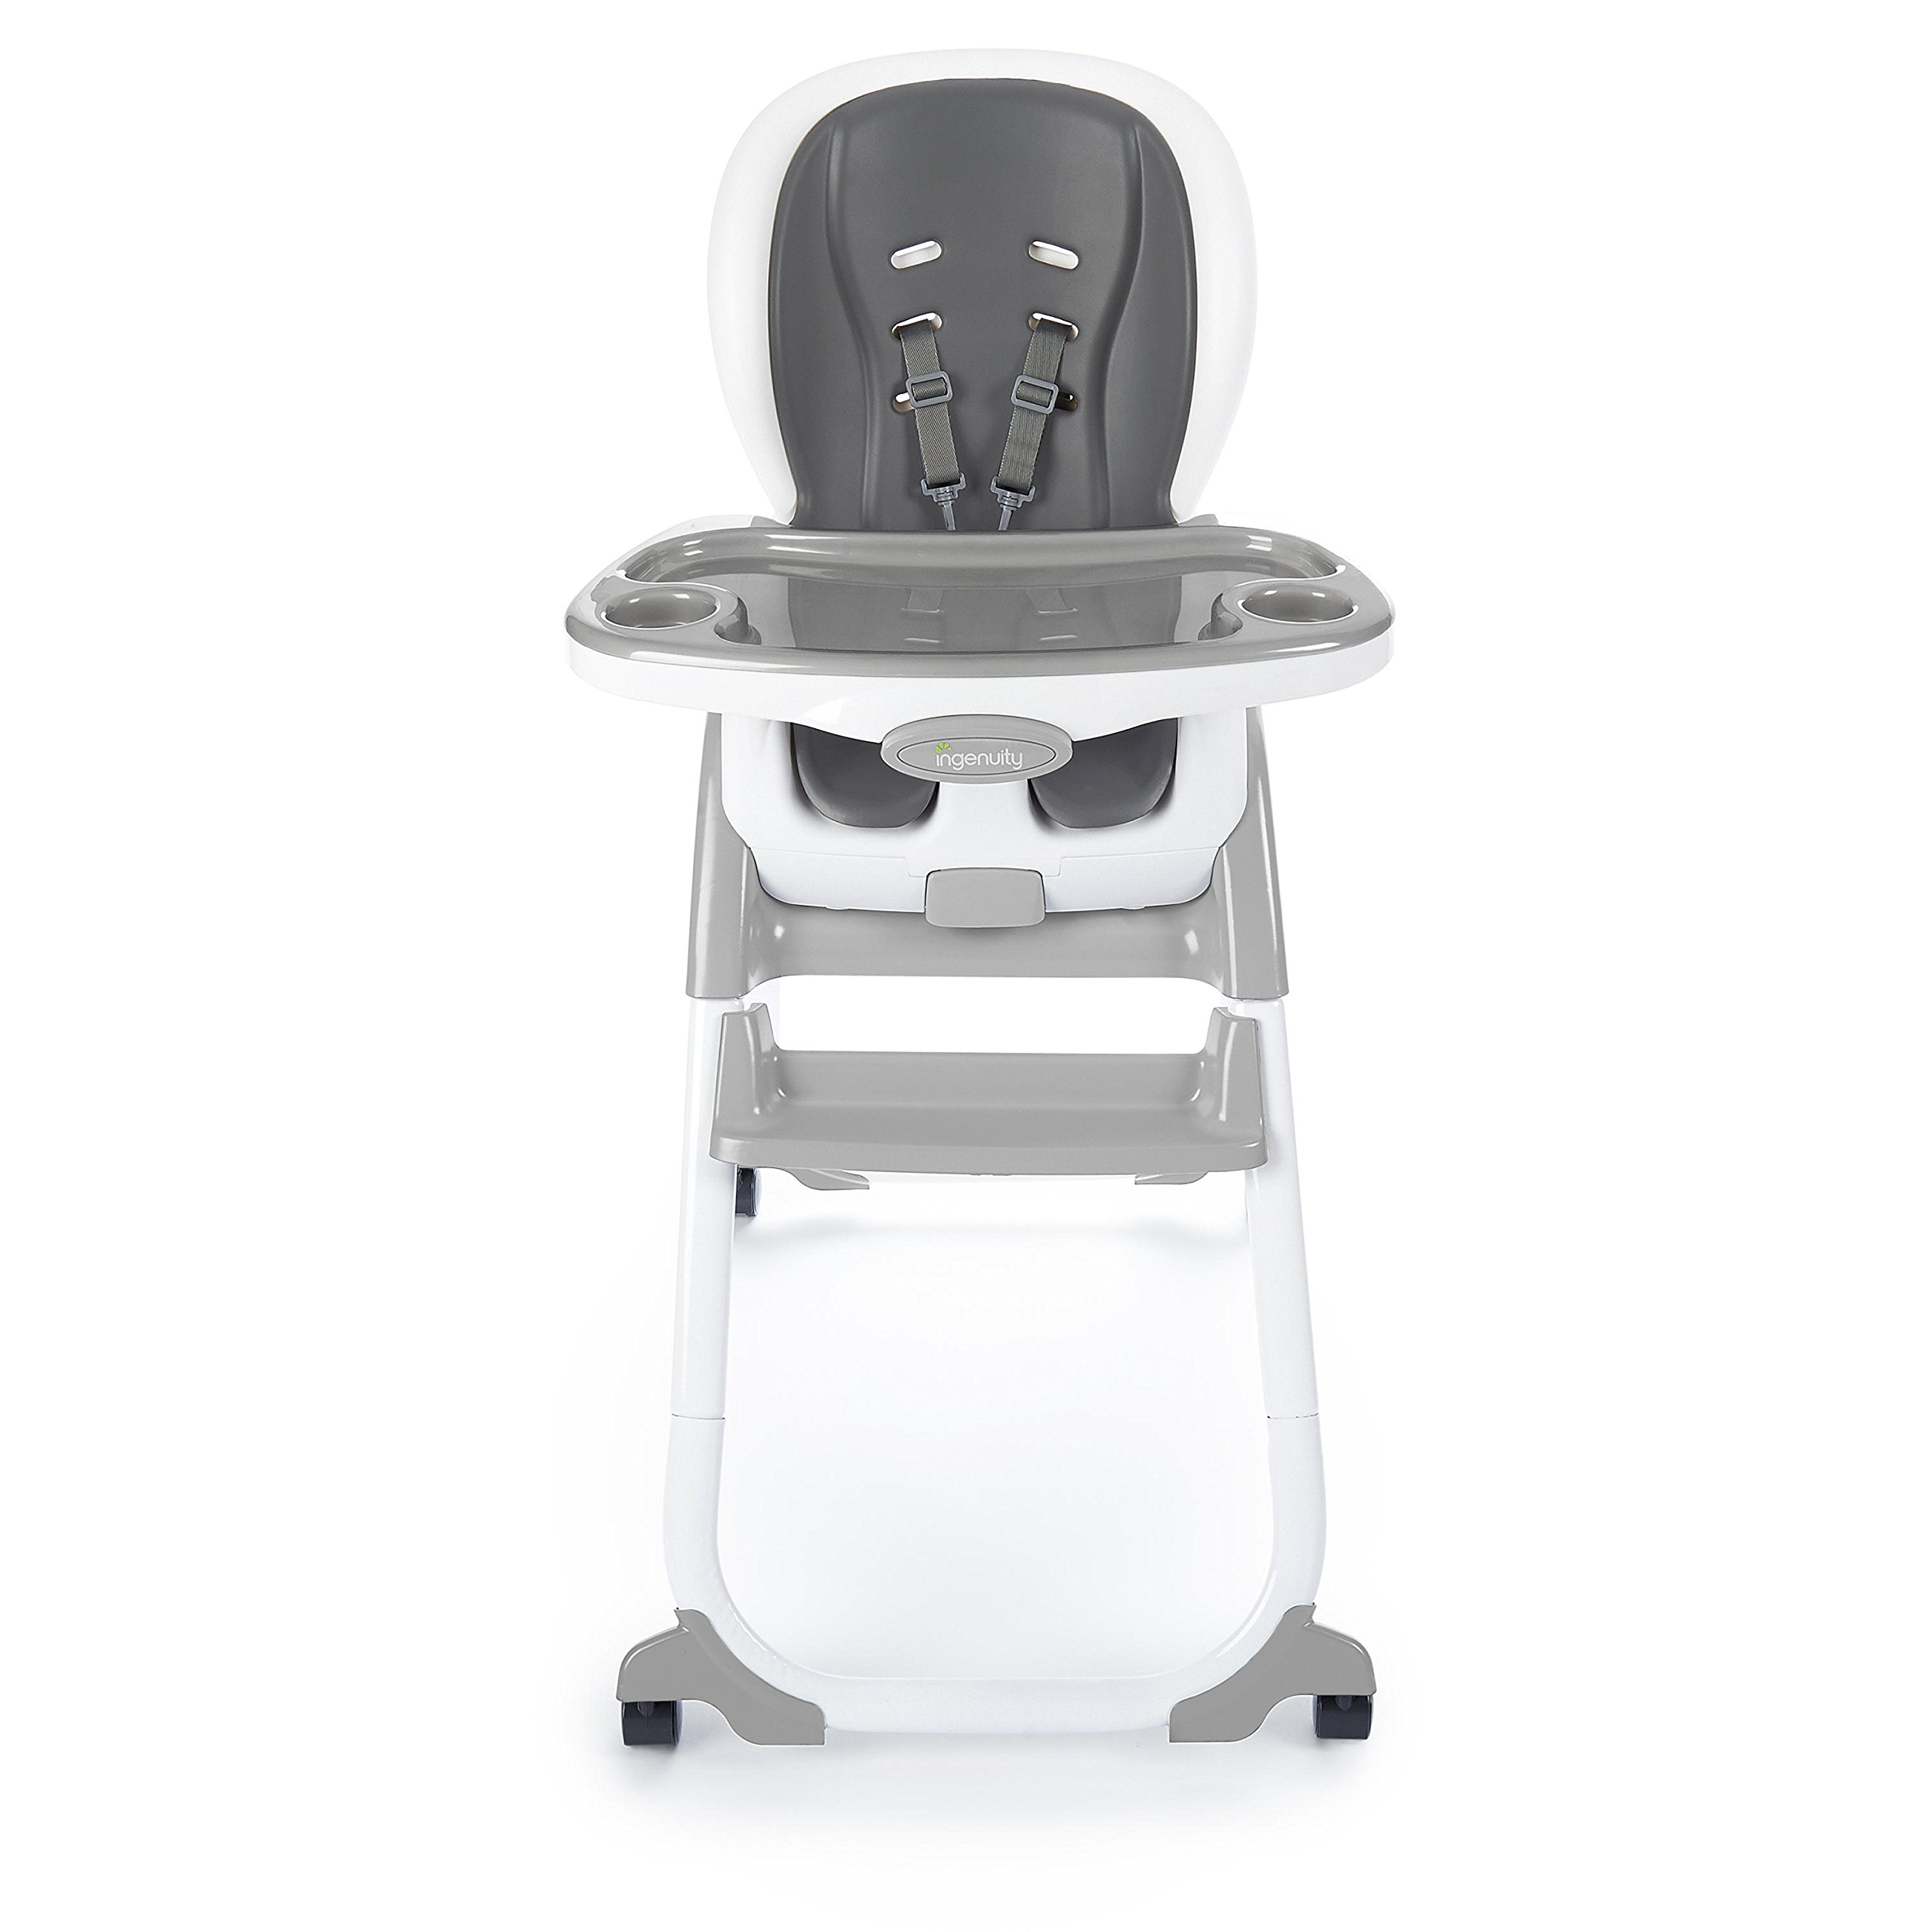 Ingenuity SmartClean Trio Elite 3-in-1 High Chair - Slate - High Chair, Toddler Chair, and Booster by Ingenuity (Image #1)